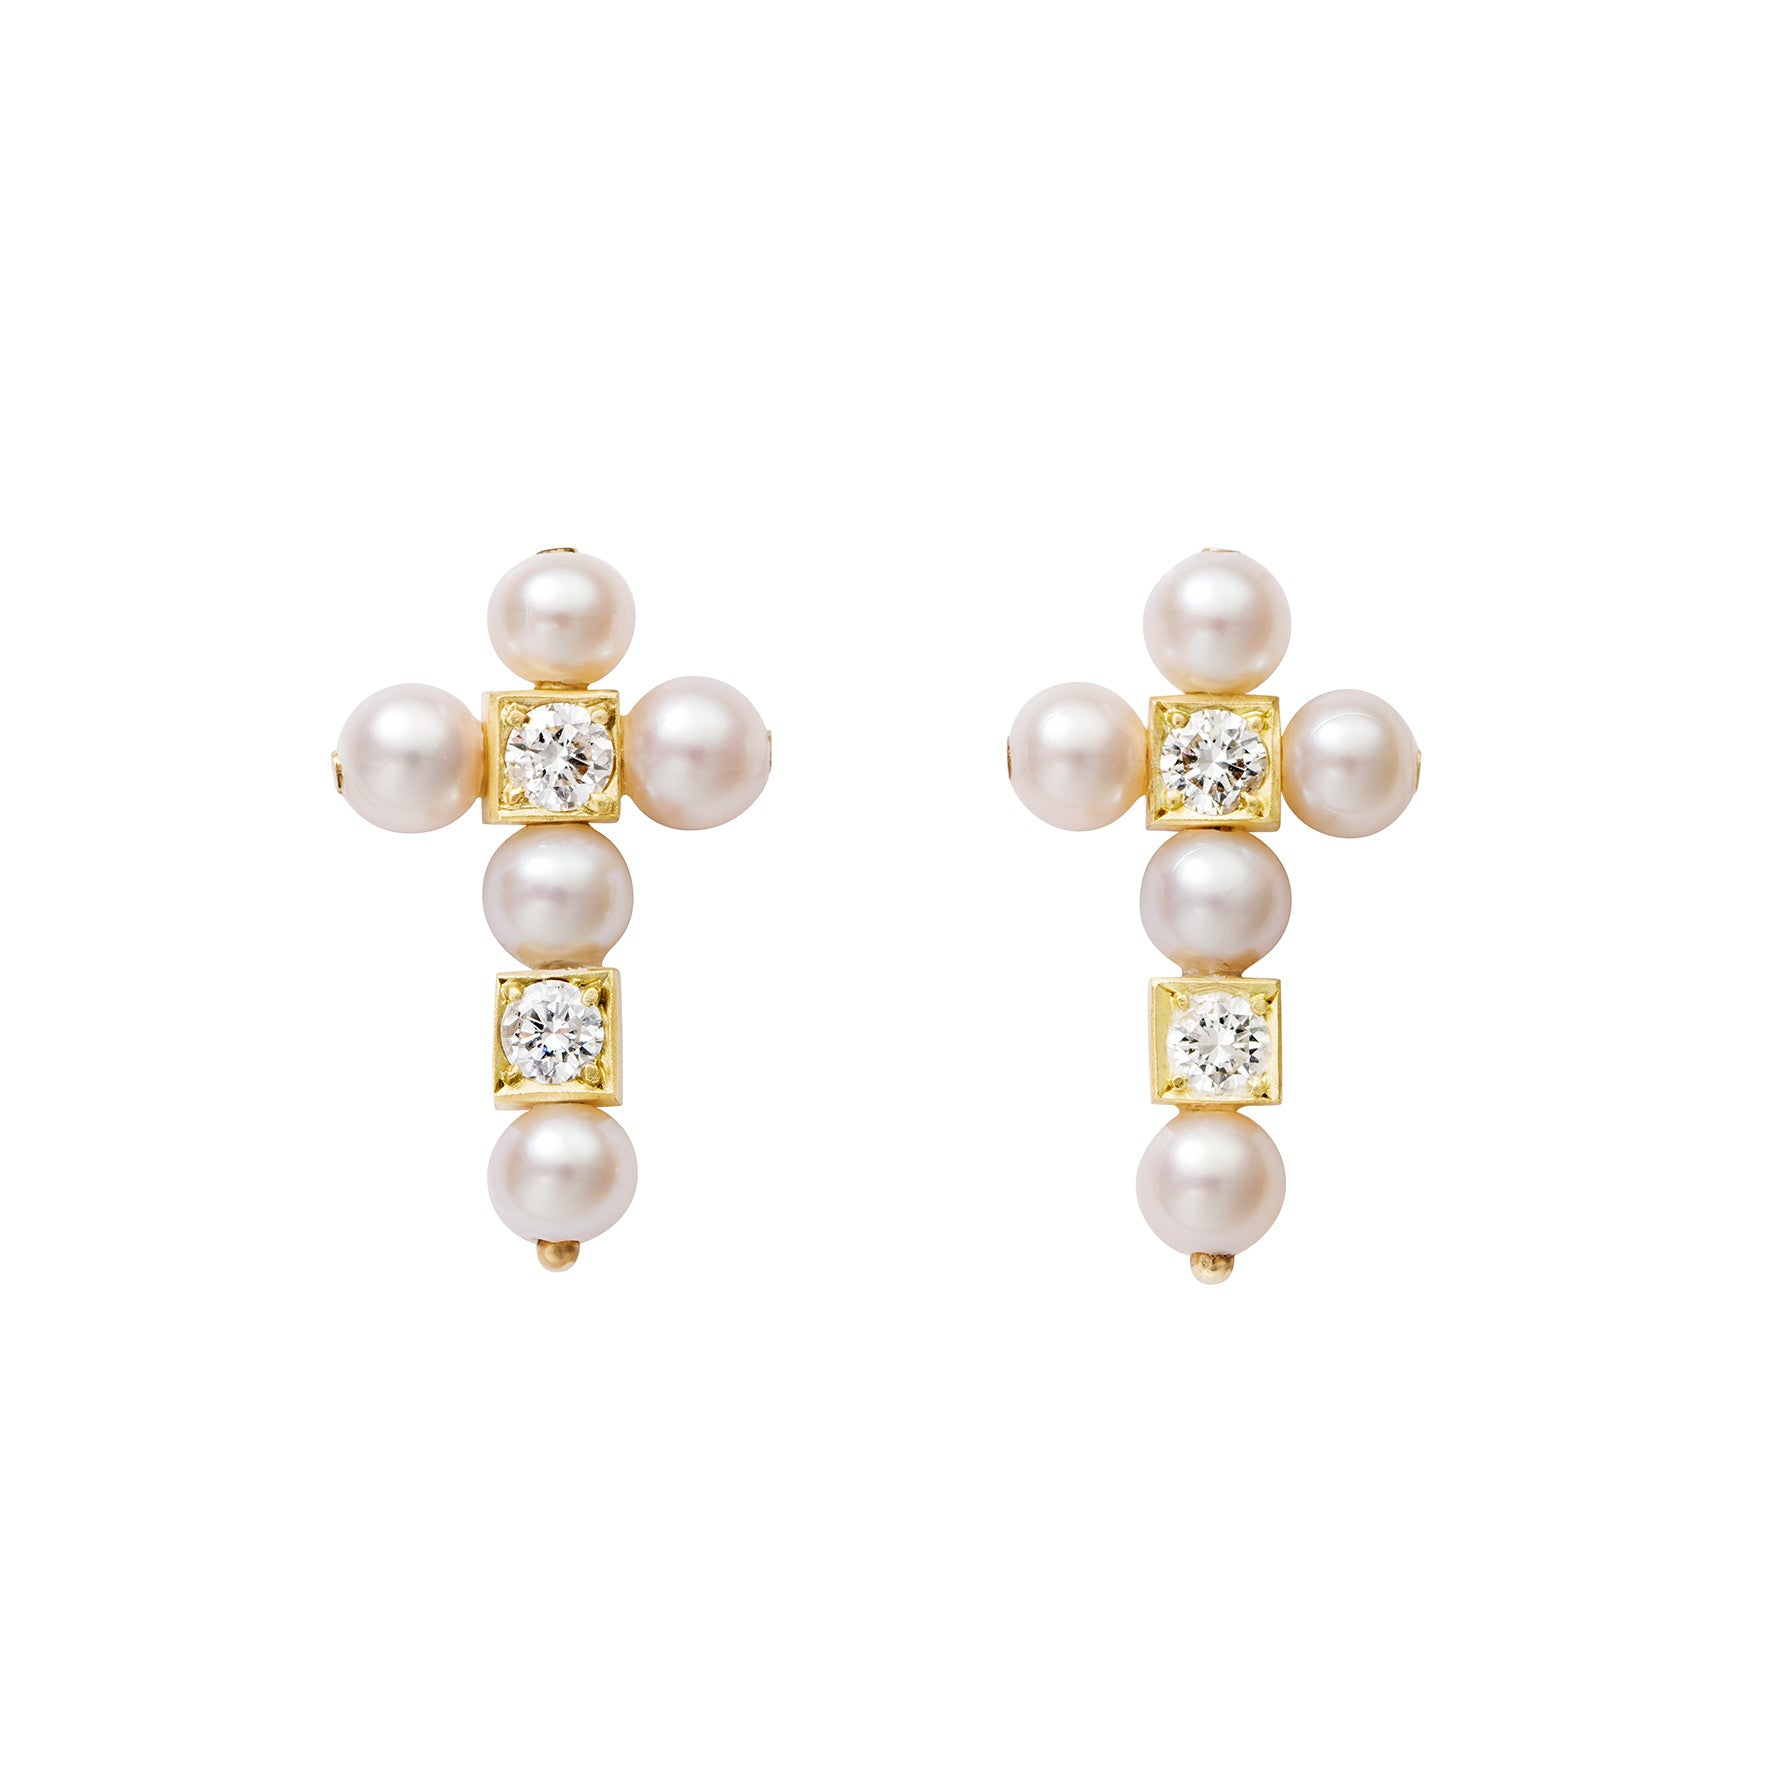 Boucles d'oreilles AA Or jaune, perles de culture et Diamants